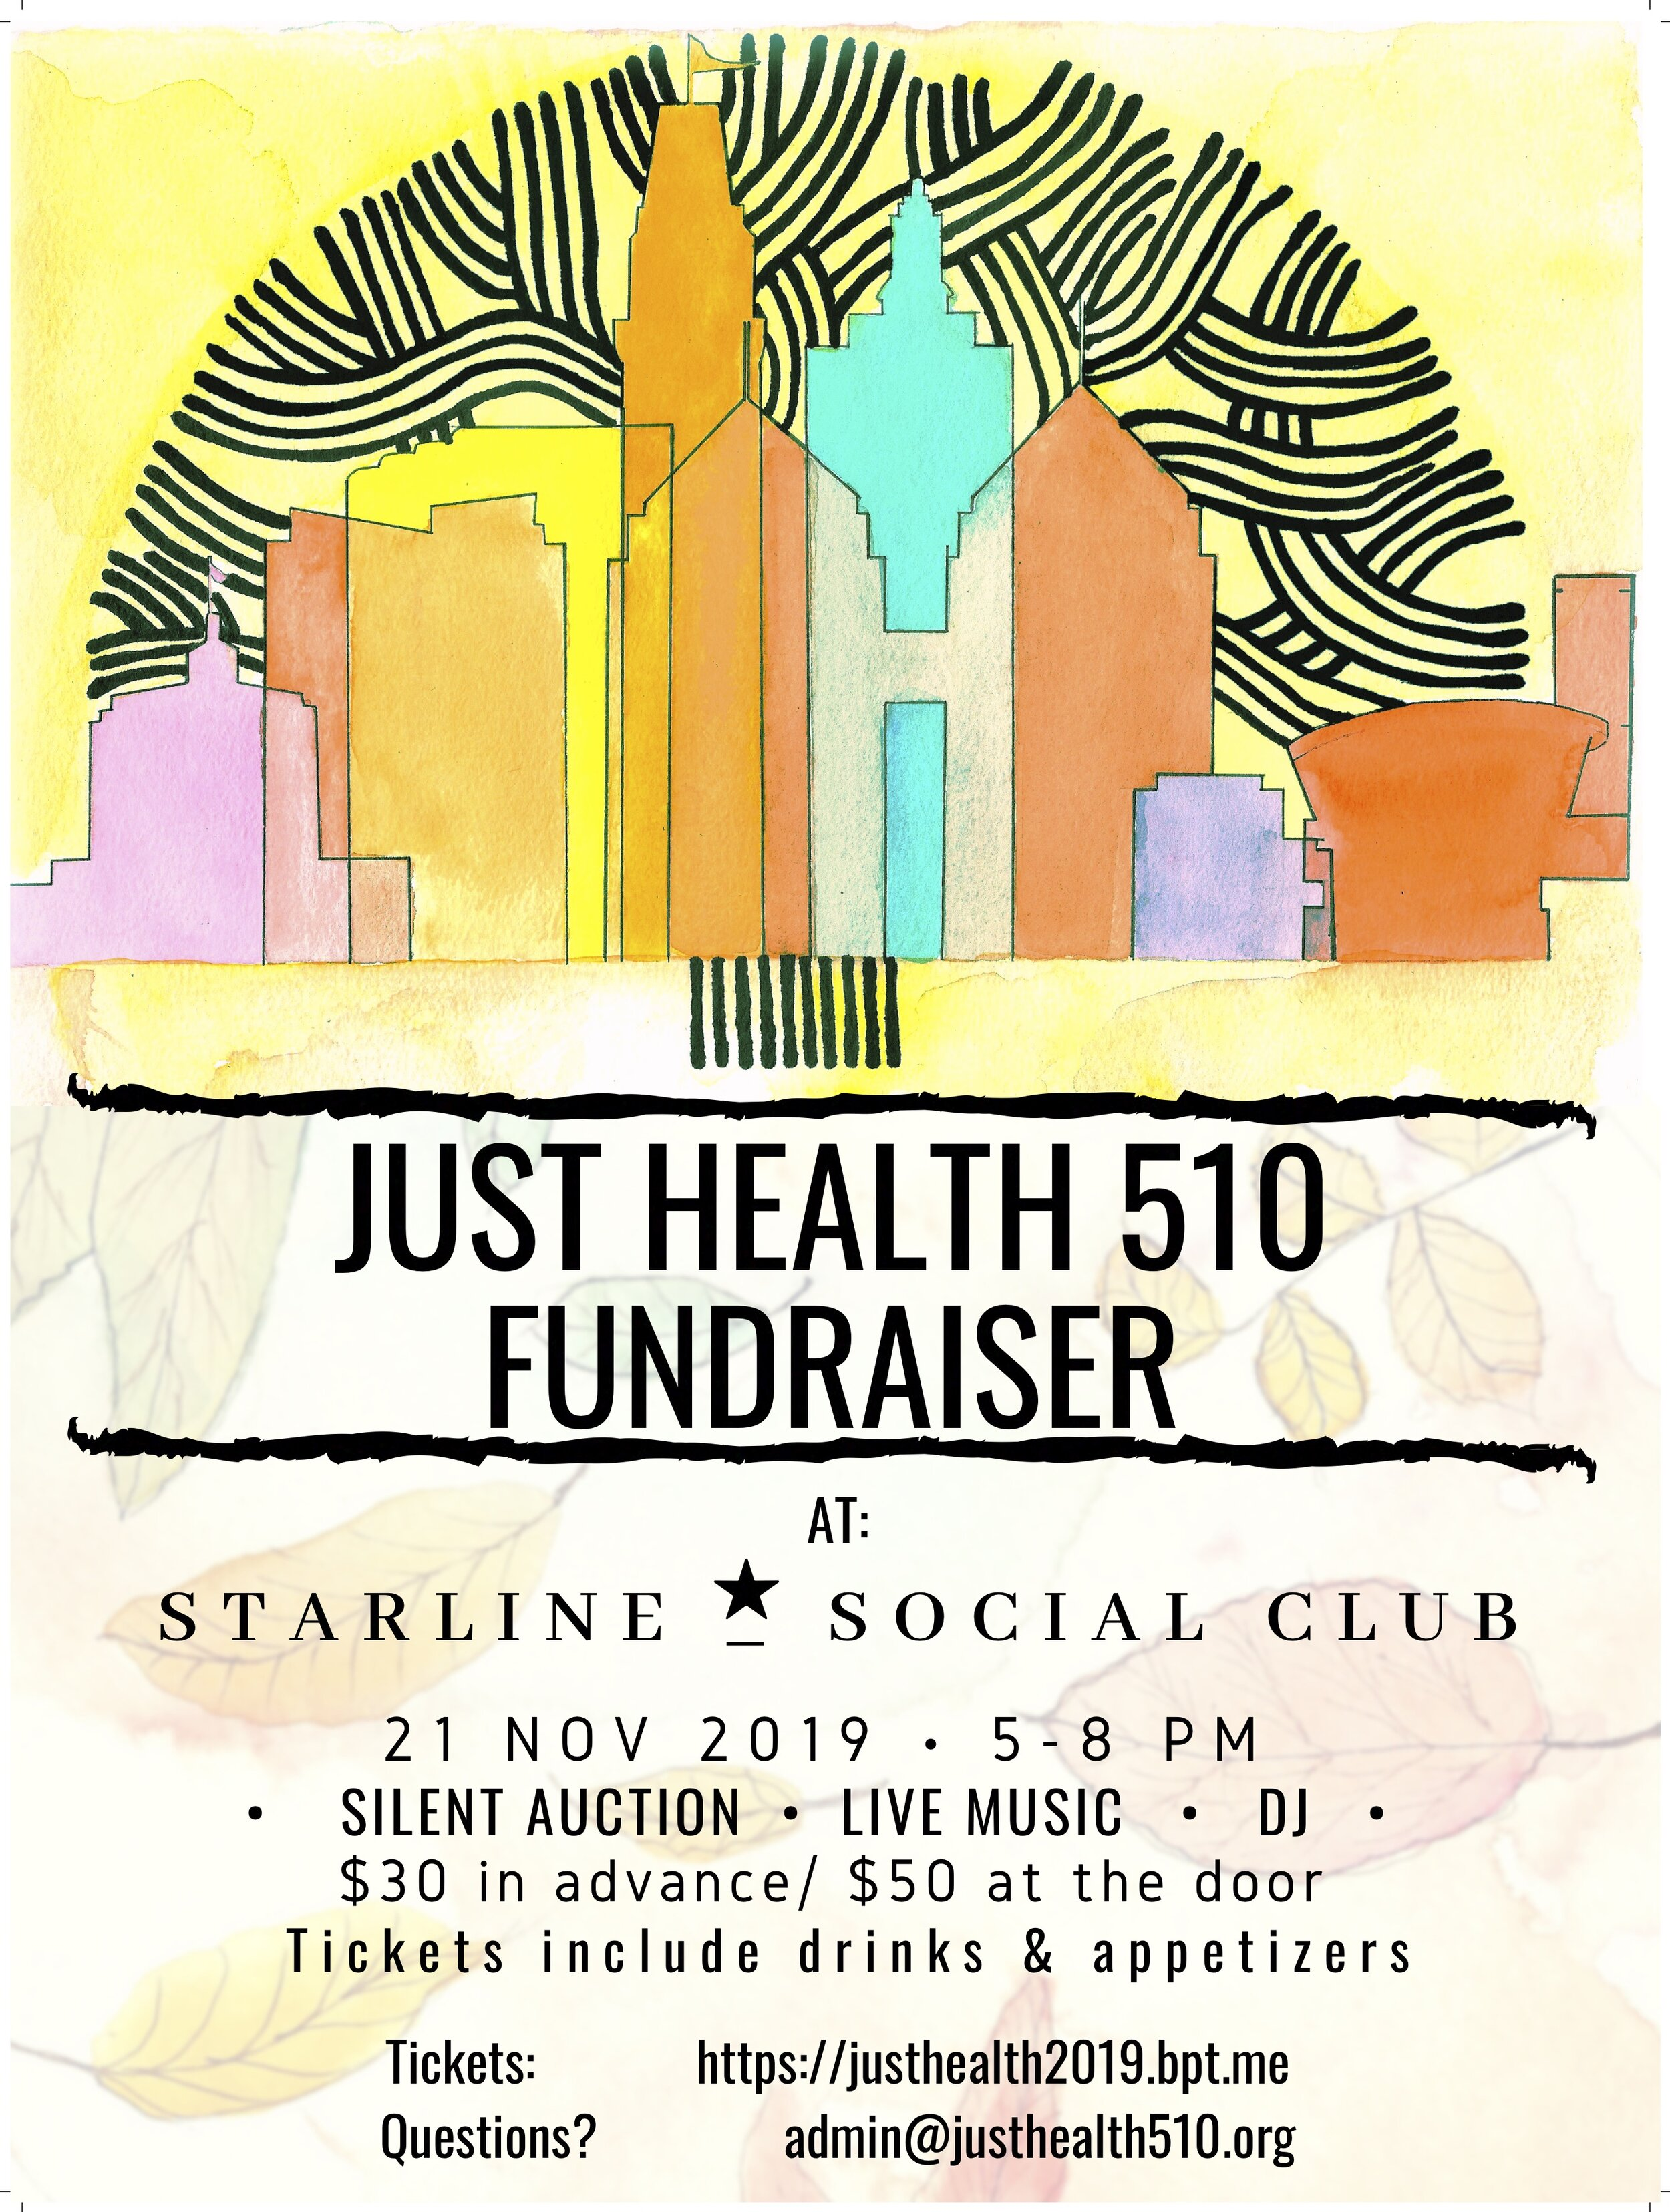 JUST HEALTH 510 FUNDRAISER-3.jpg